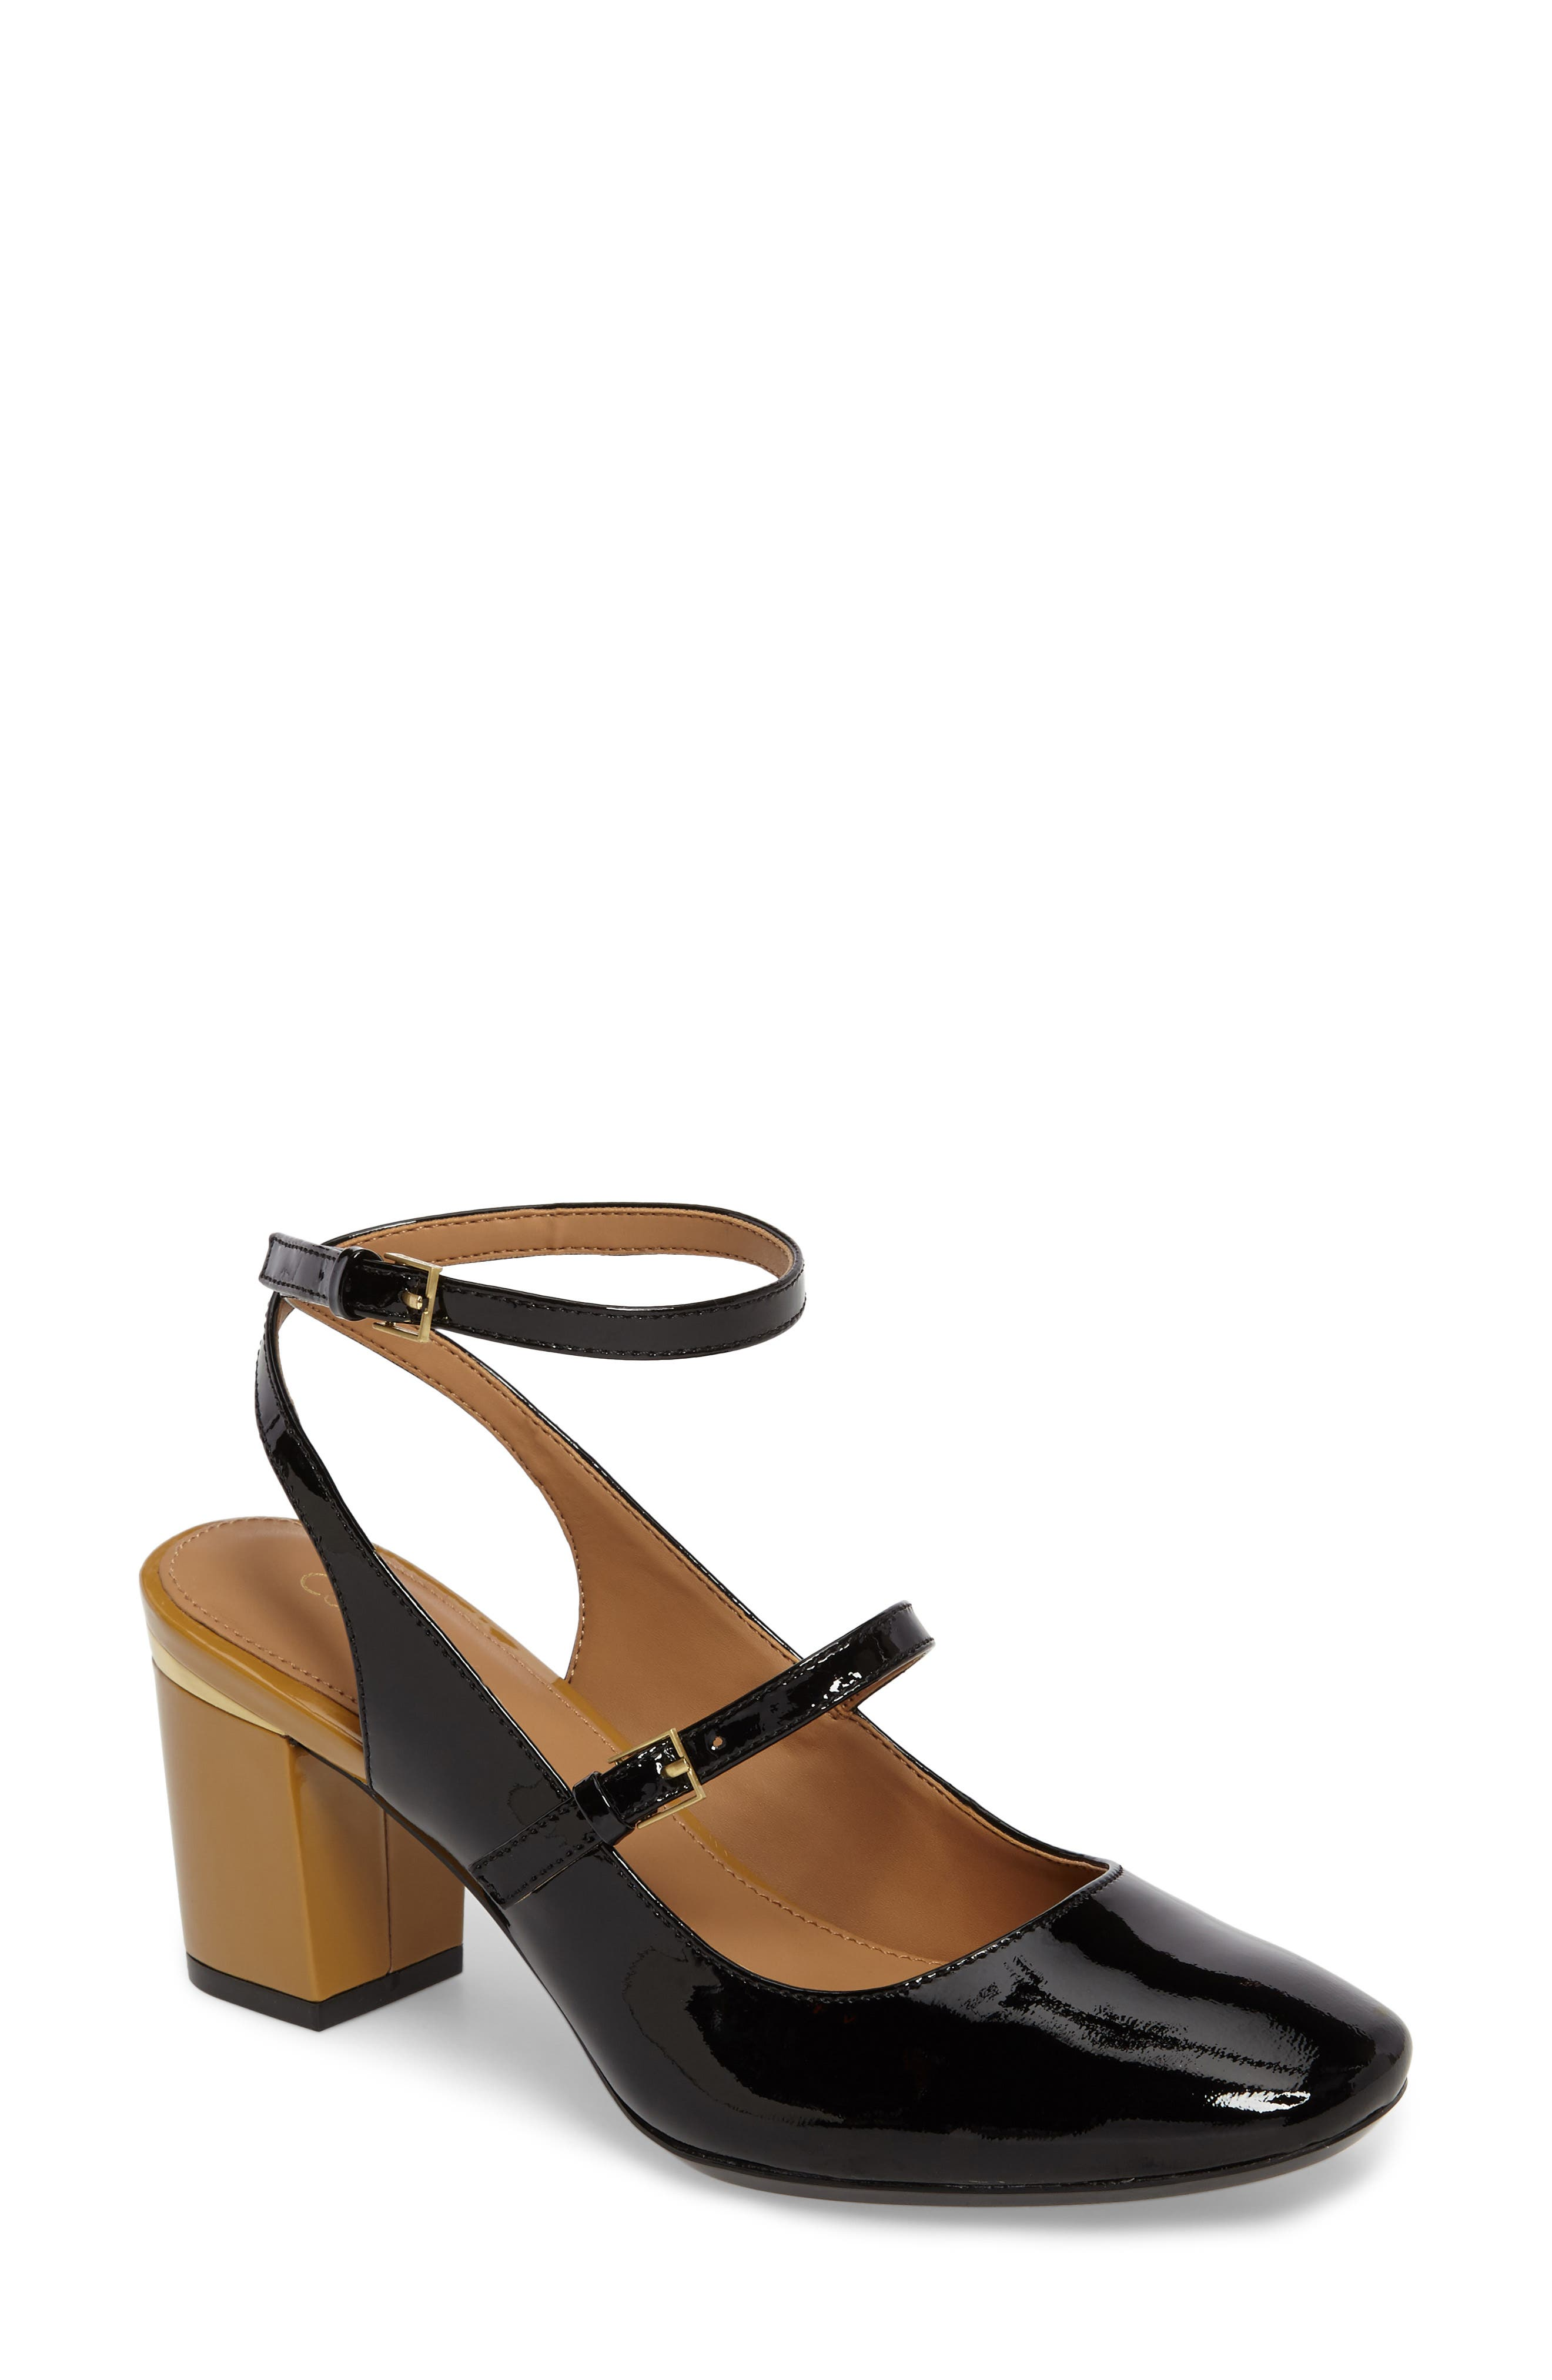 Cleary Wraparound Mary Jane Pump,                         Main,                         color, 001